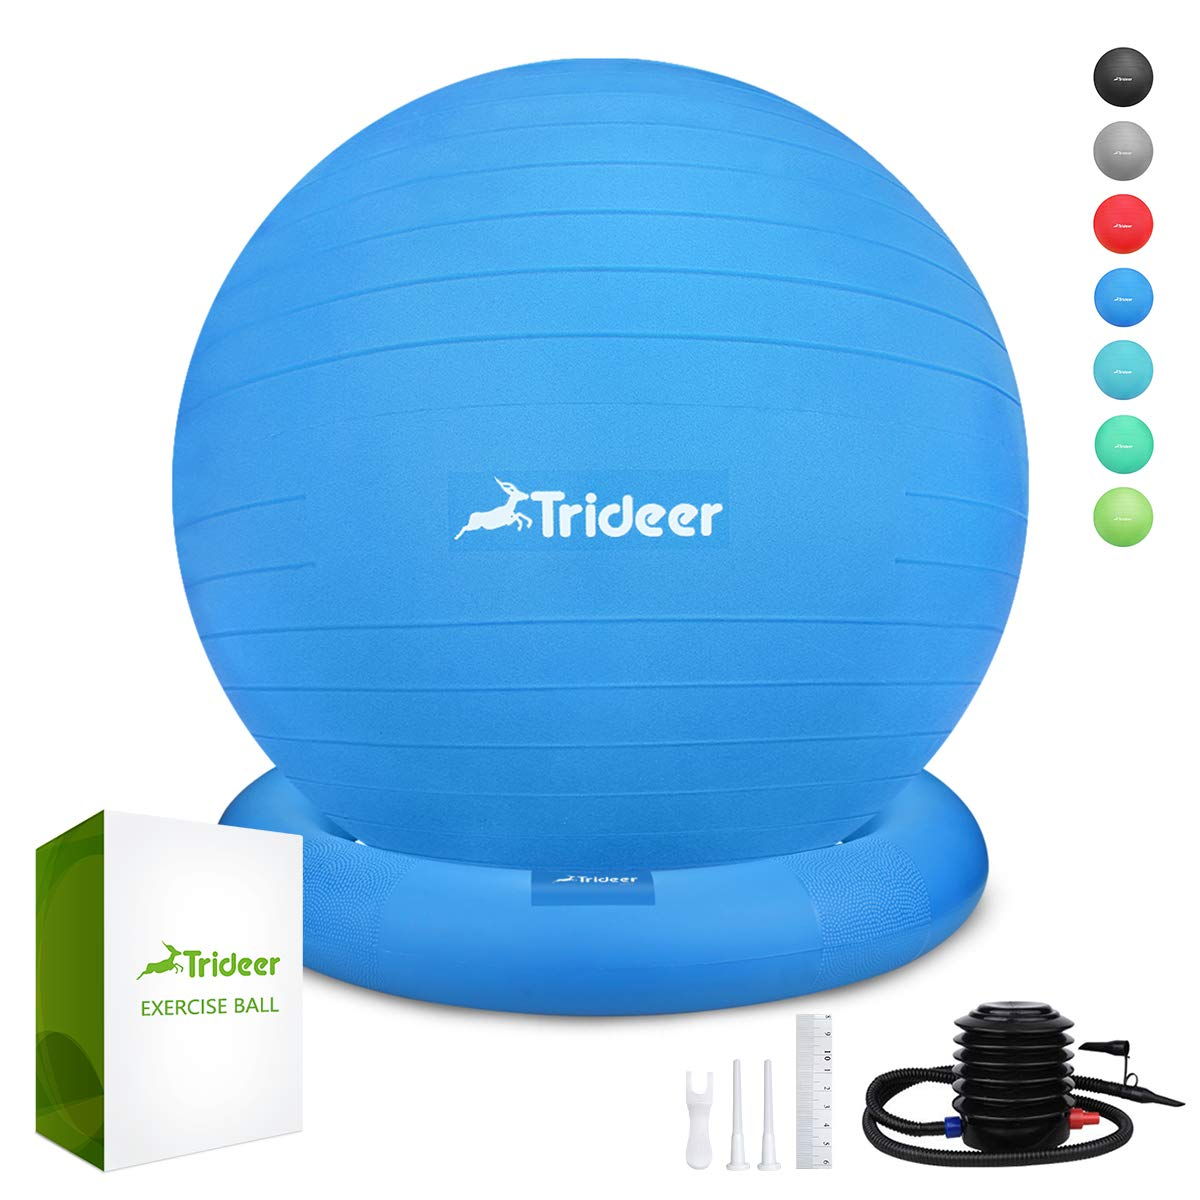 Trideer Ball Chair - Exercise Stability Yoga Ball with Base for Home and Office Desk, Ball Seat, Flexible Seating with Ring & Pump, Improves Balance, Back Pain, Core Strength & Posture(Ball with Ring by Trideer (Image #1)